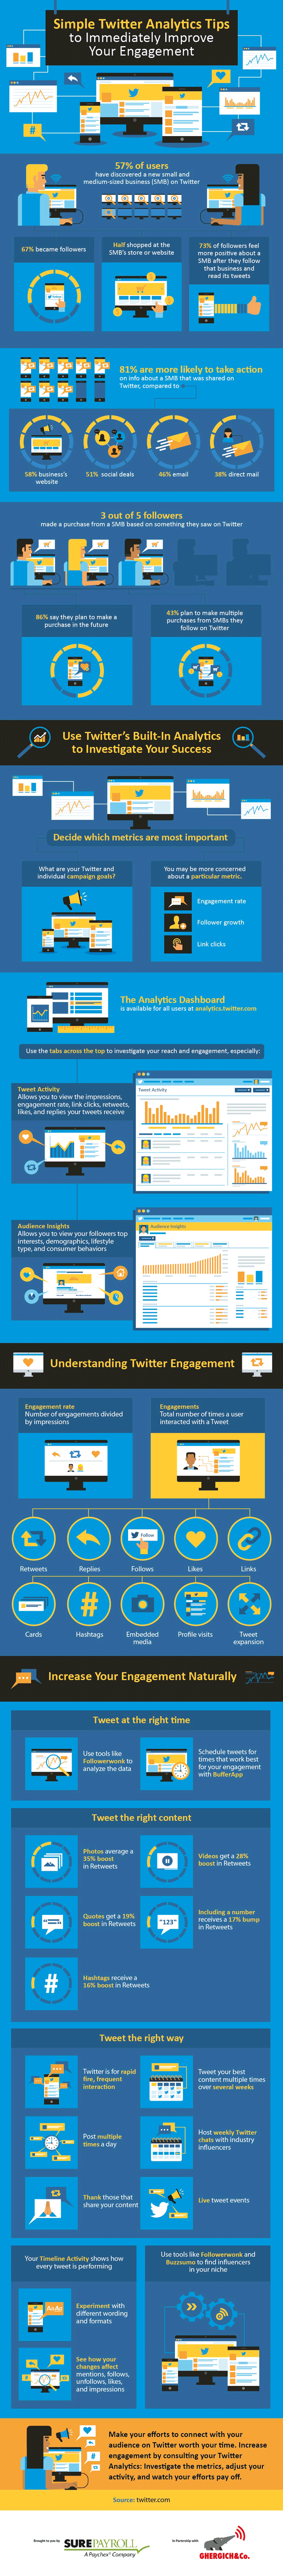 How To Make The Most Of Your Twitter Analytics Infographic Idea1